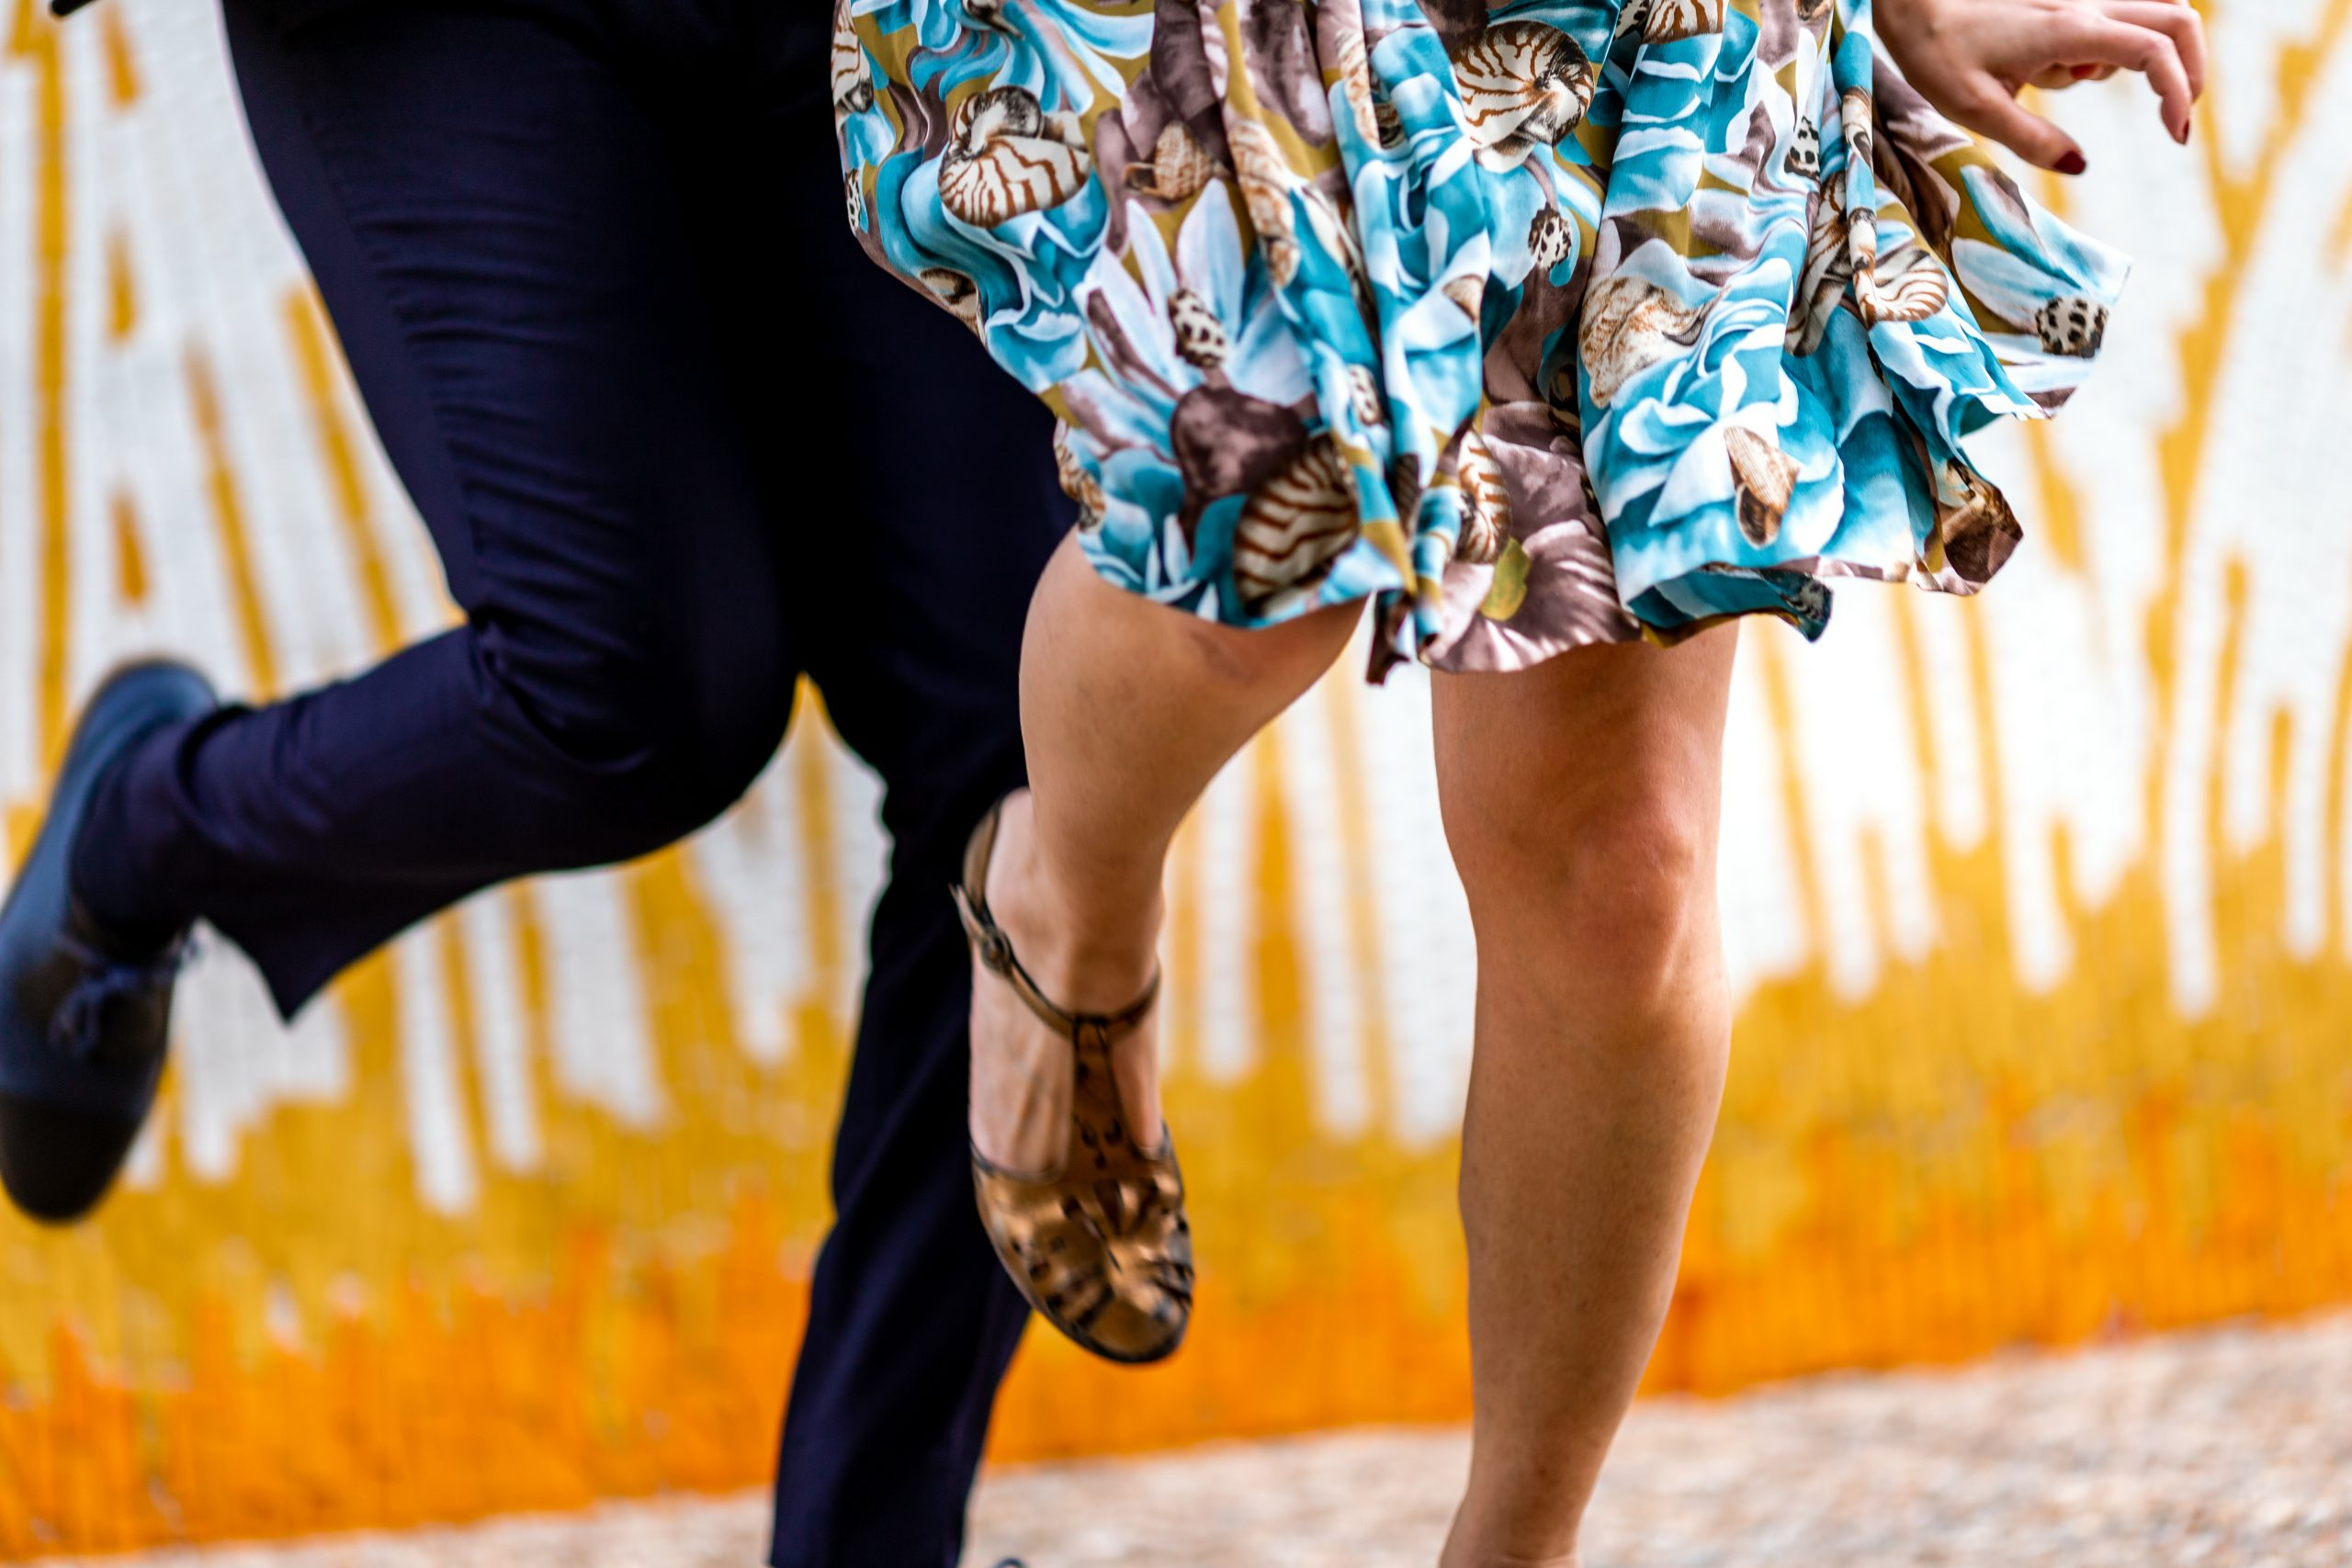 Two people dancing from the waist down, with vintage clothes and shoes and a bright summery background